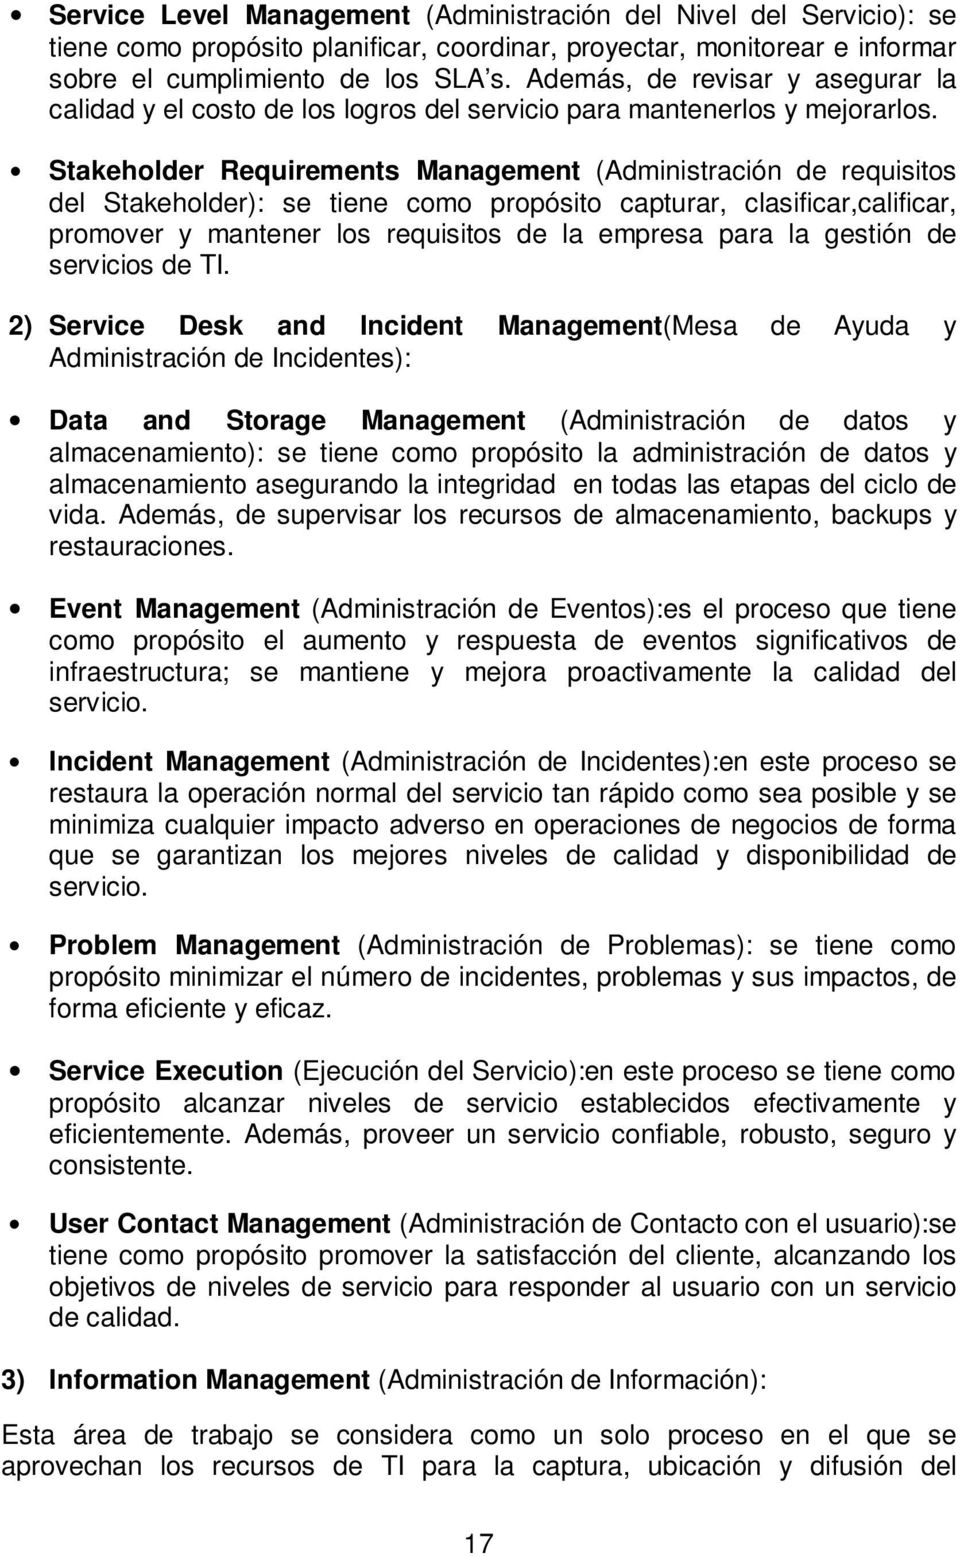 Stakeholder Requirements Management (Administración de requisitos del Stakeholder): se tiene como propósito capturar, clasificar,calificar, promover y mantener los requisitos de la empresa para la